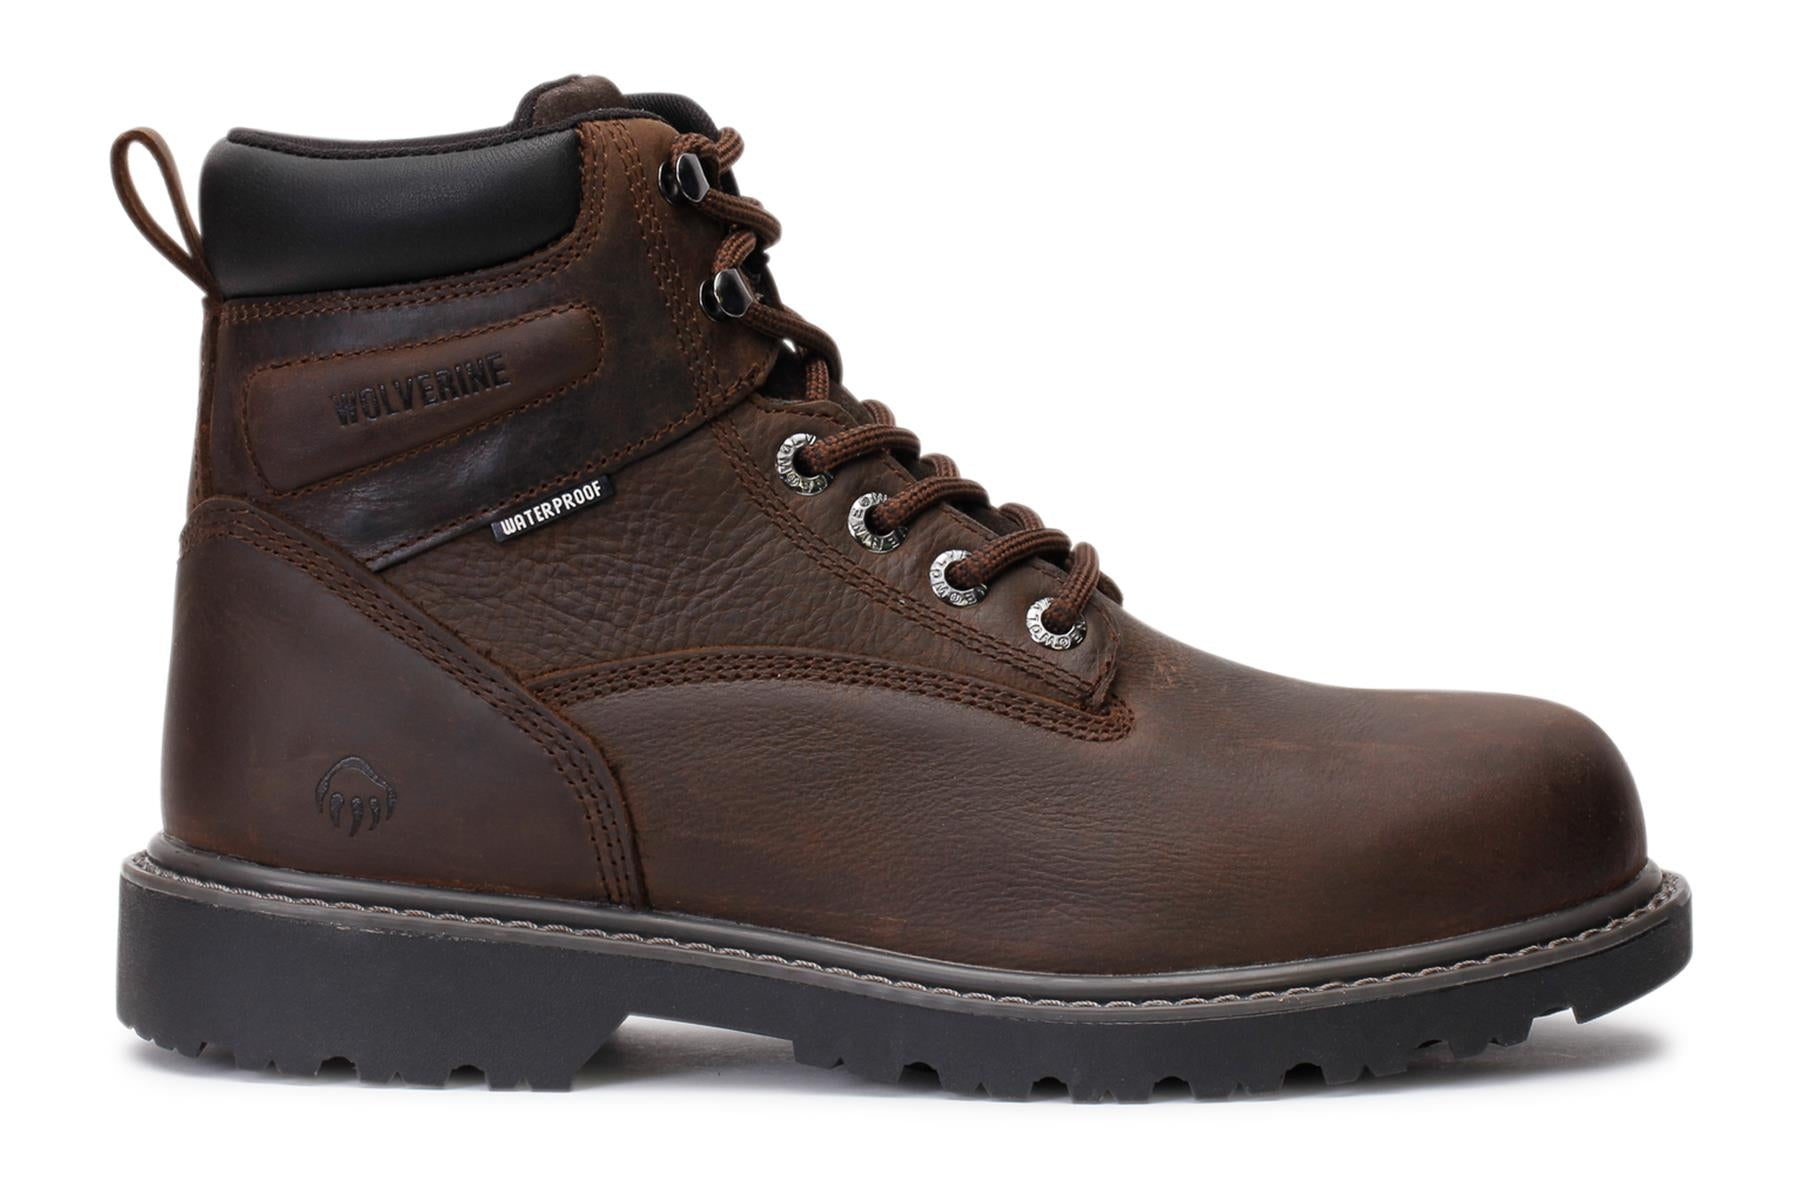 wolverine-mens-6-work-steel-toe-waterproof-boots-floorhand-dark-brown-w10633-main